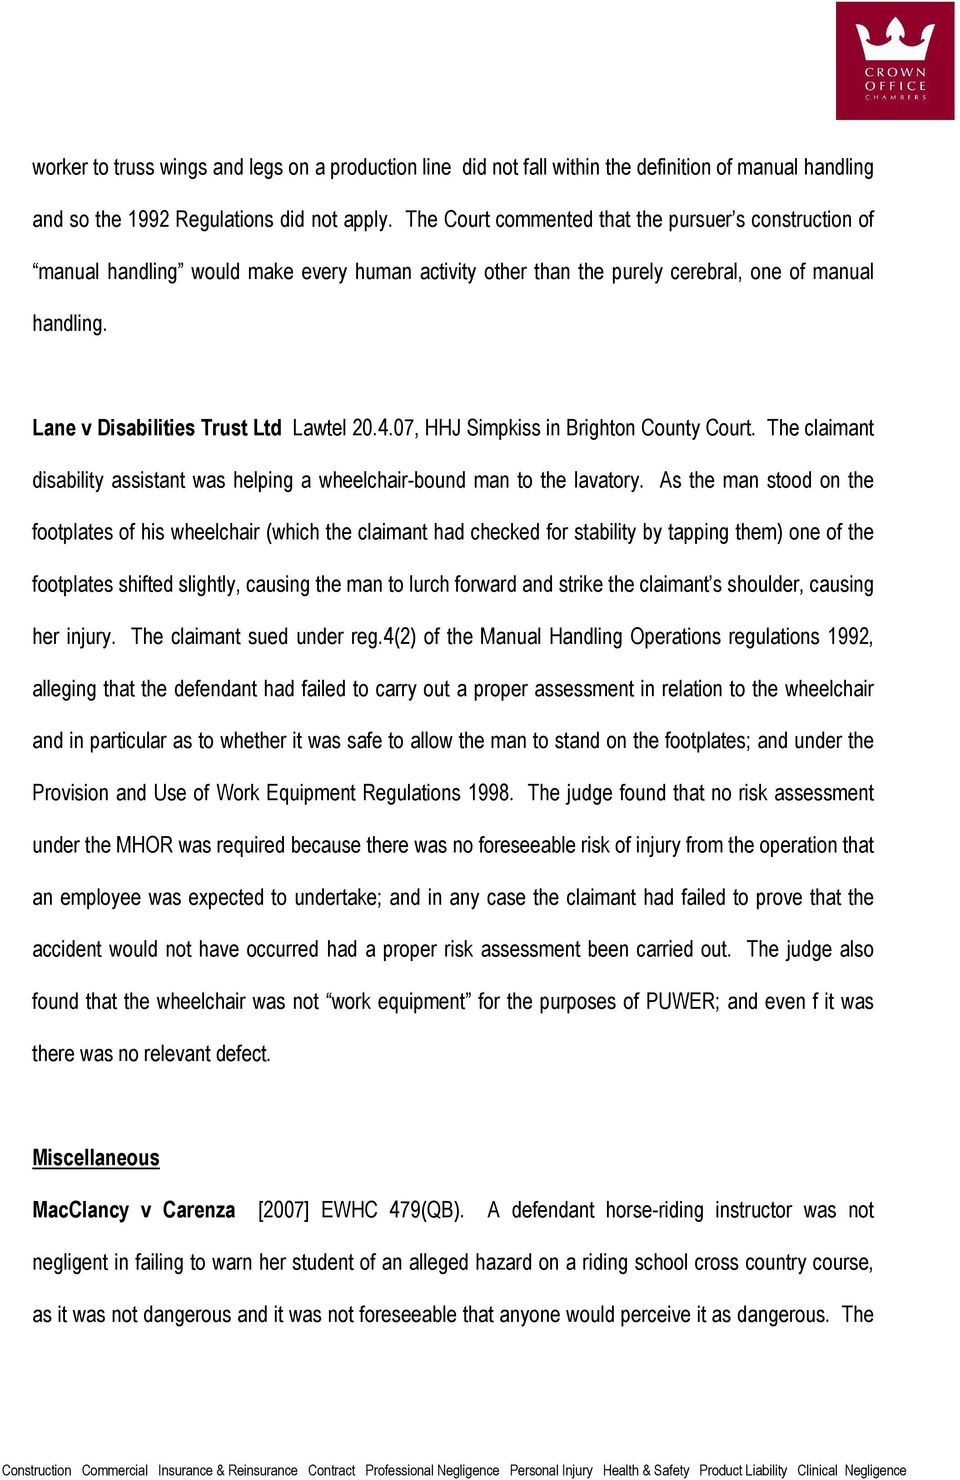 4.07, HHJ Simpkiss in Brighton County Court. The claimant disability assistant was helping a wheelchair-bound man to the lavatory.